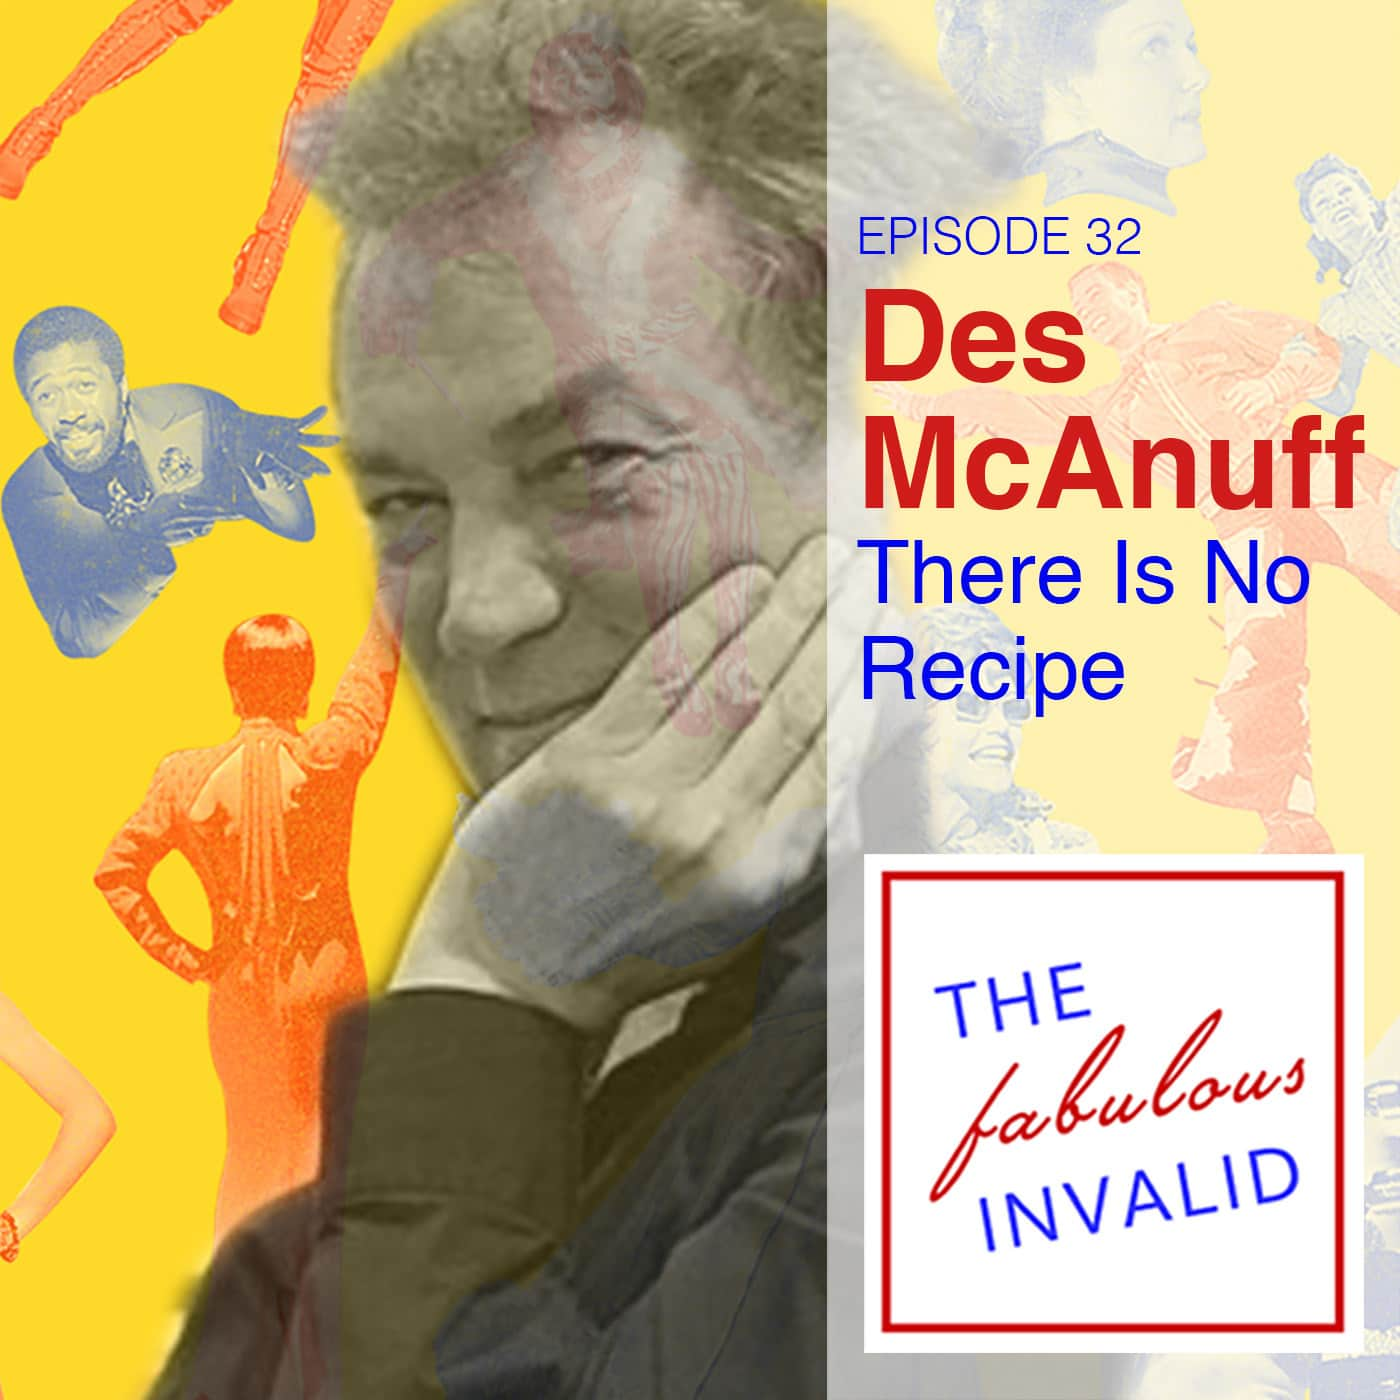 The Fabulous Invalid Ep 32 Des McAnuff